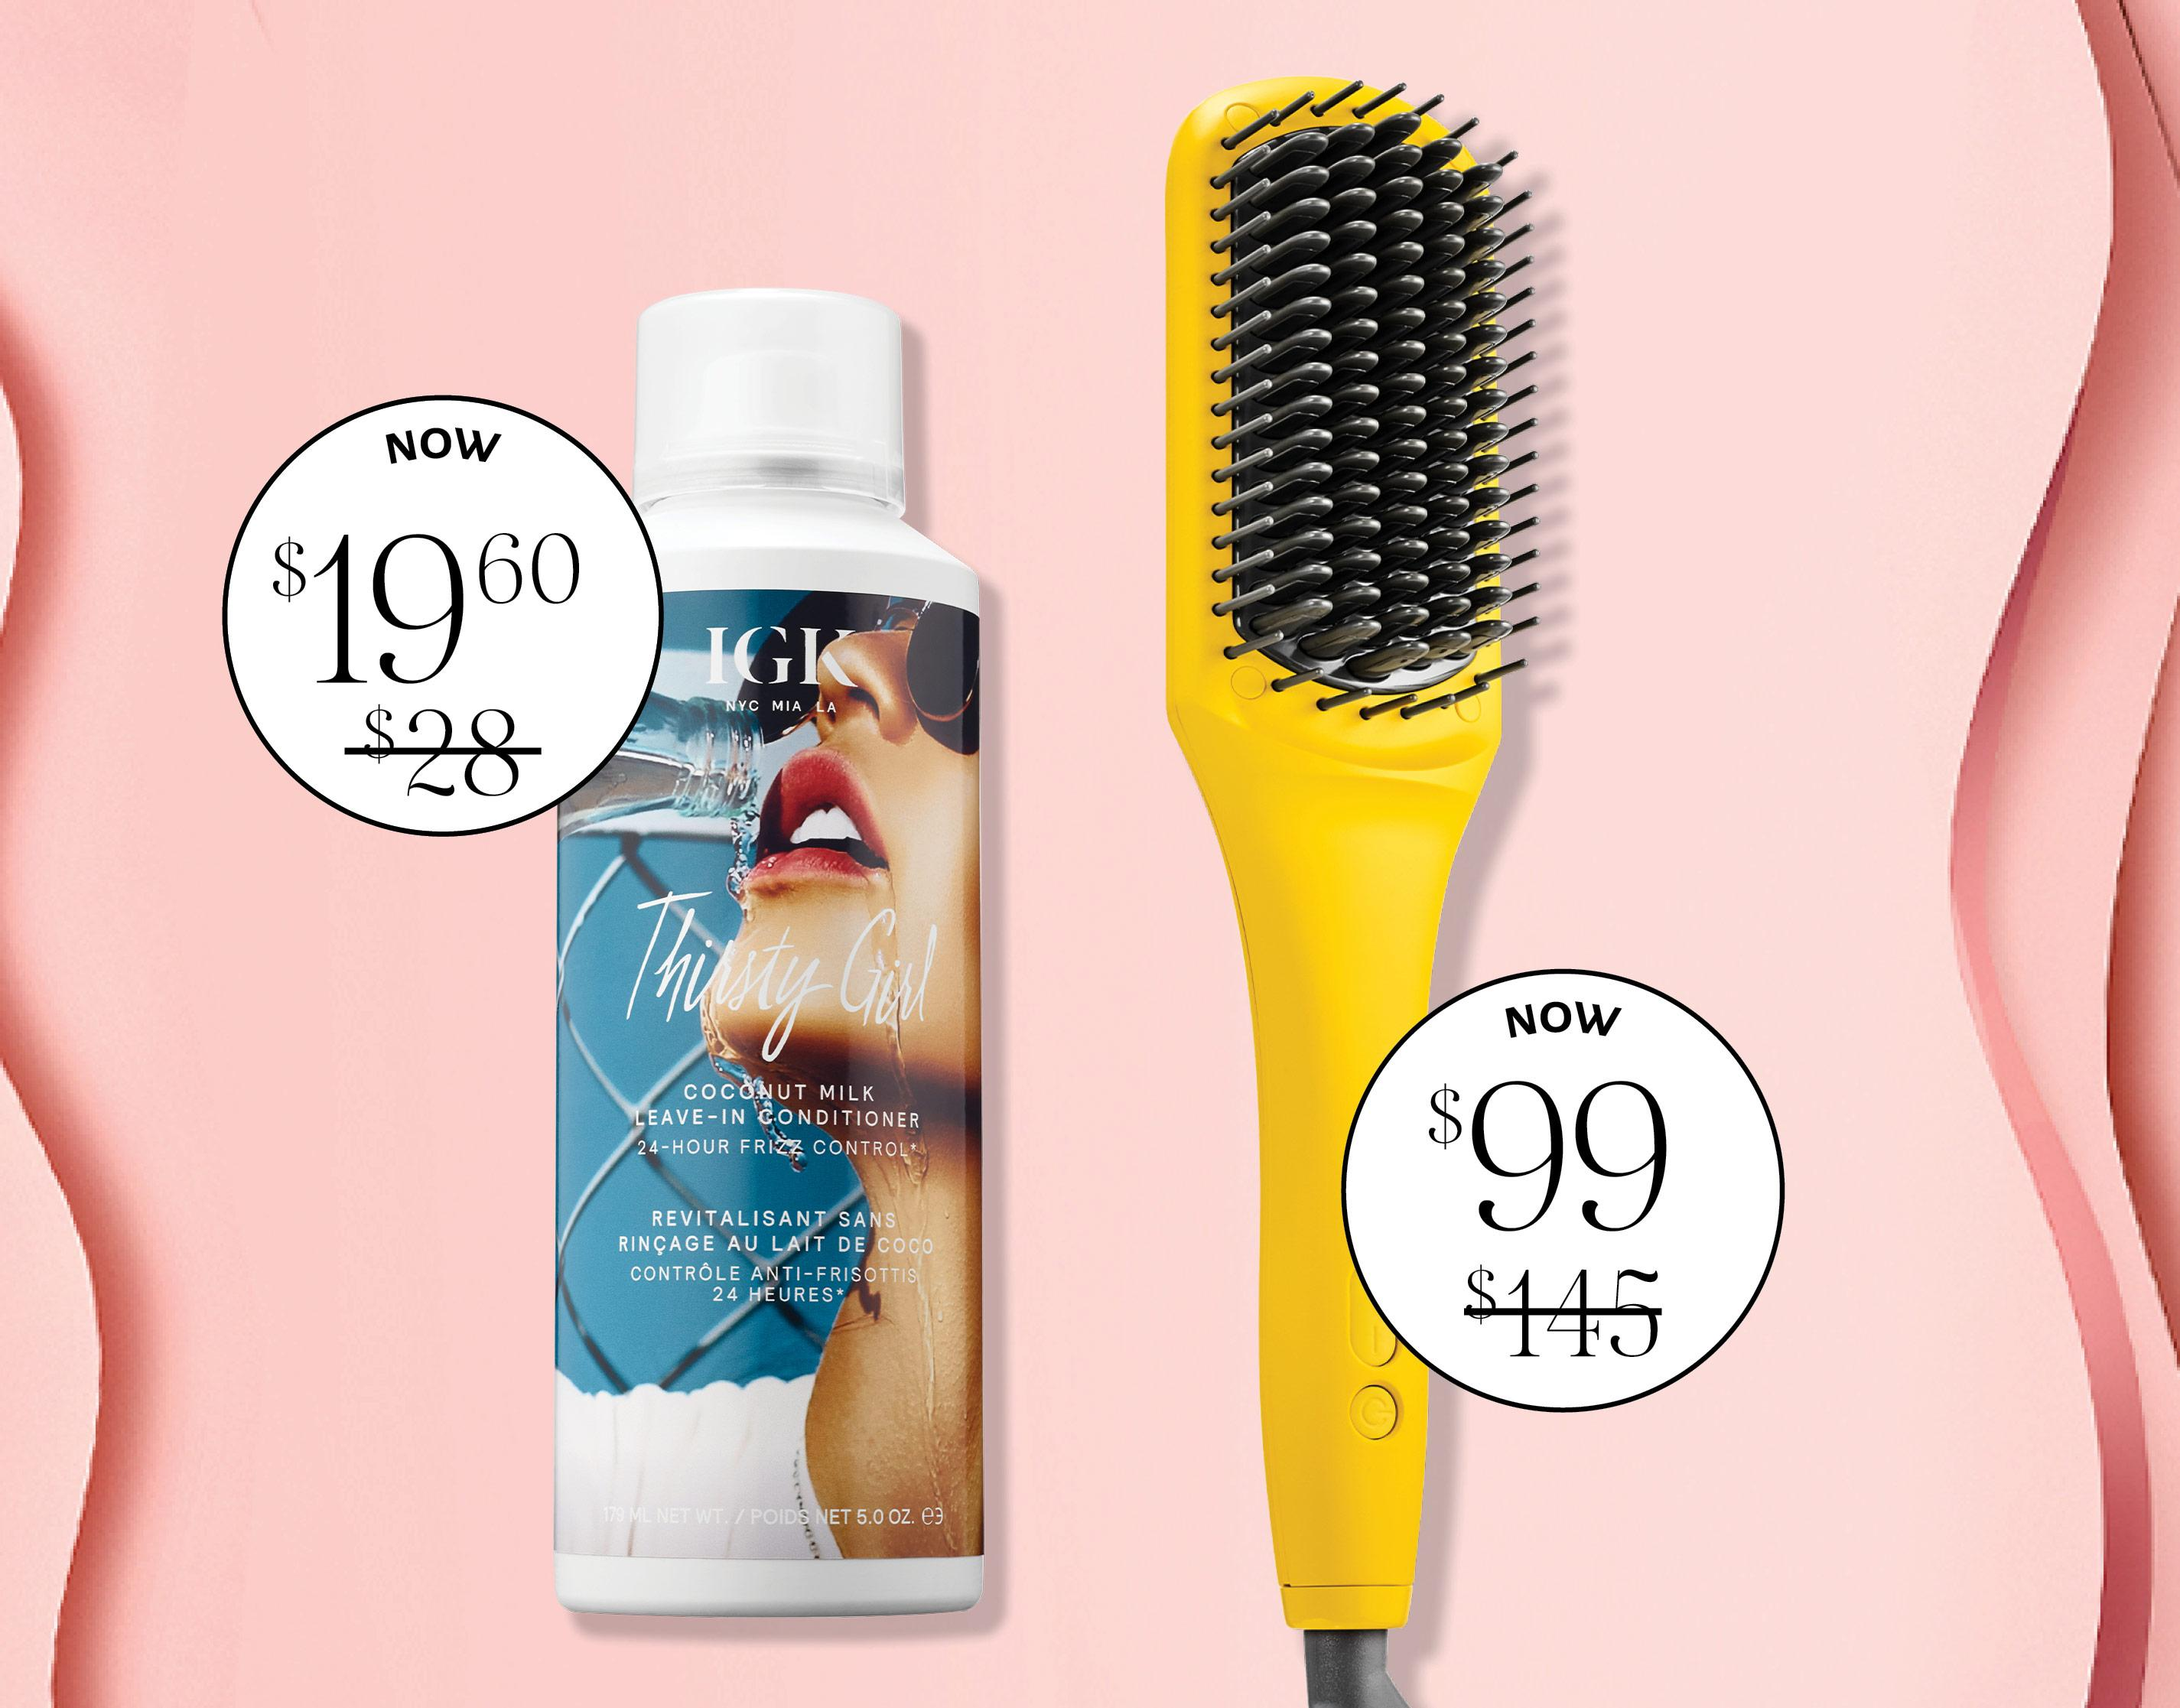 $19.00 Thirsty Girl. $99 electric brushes